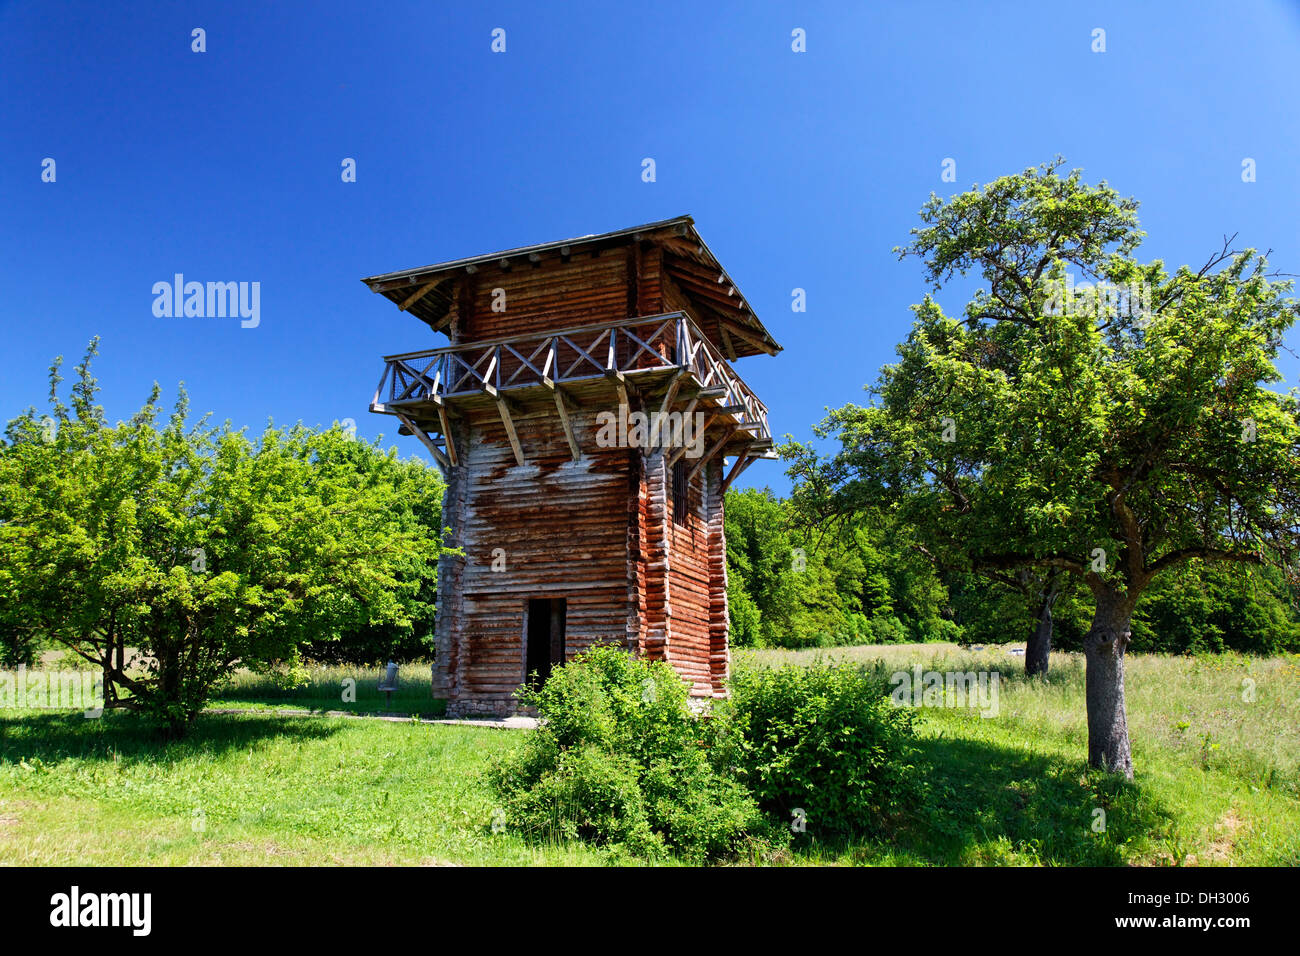 germany baden wuerttemberg lorch upper germanic limes unesco stock photo royalty free image. Black Bedroom Furniture Sets. Home Design Ideas